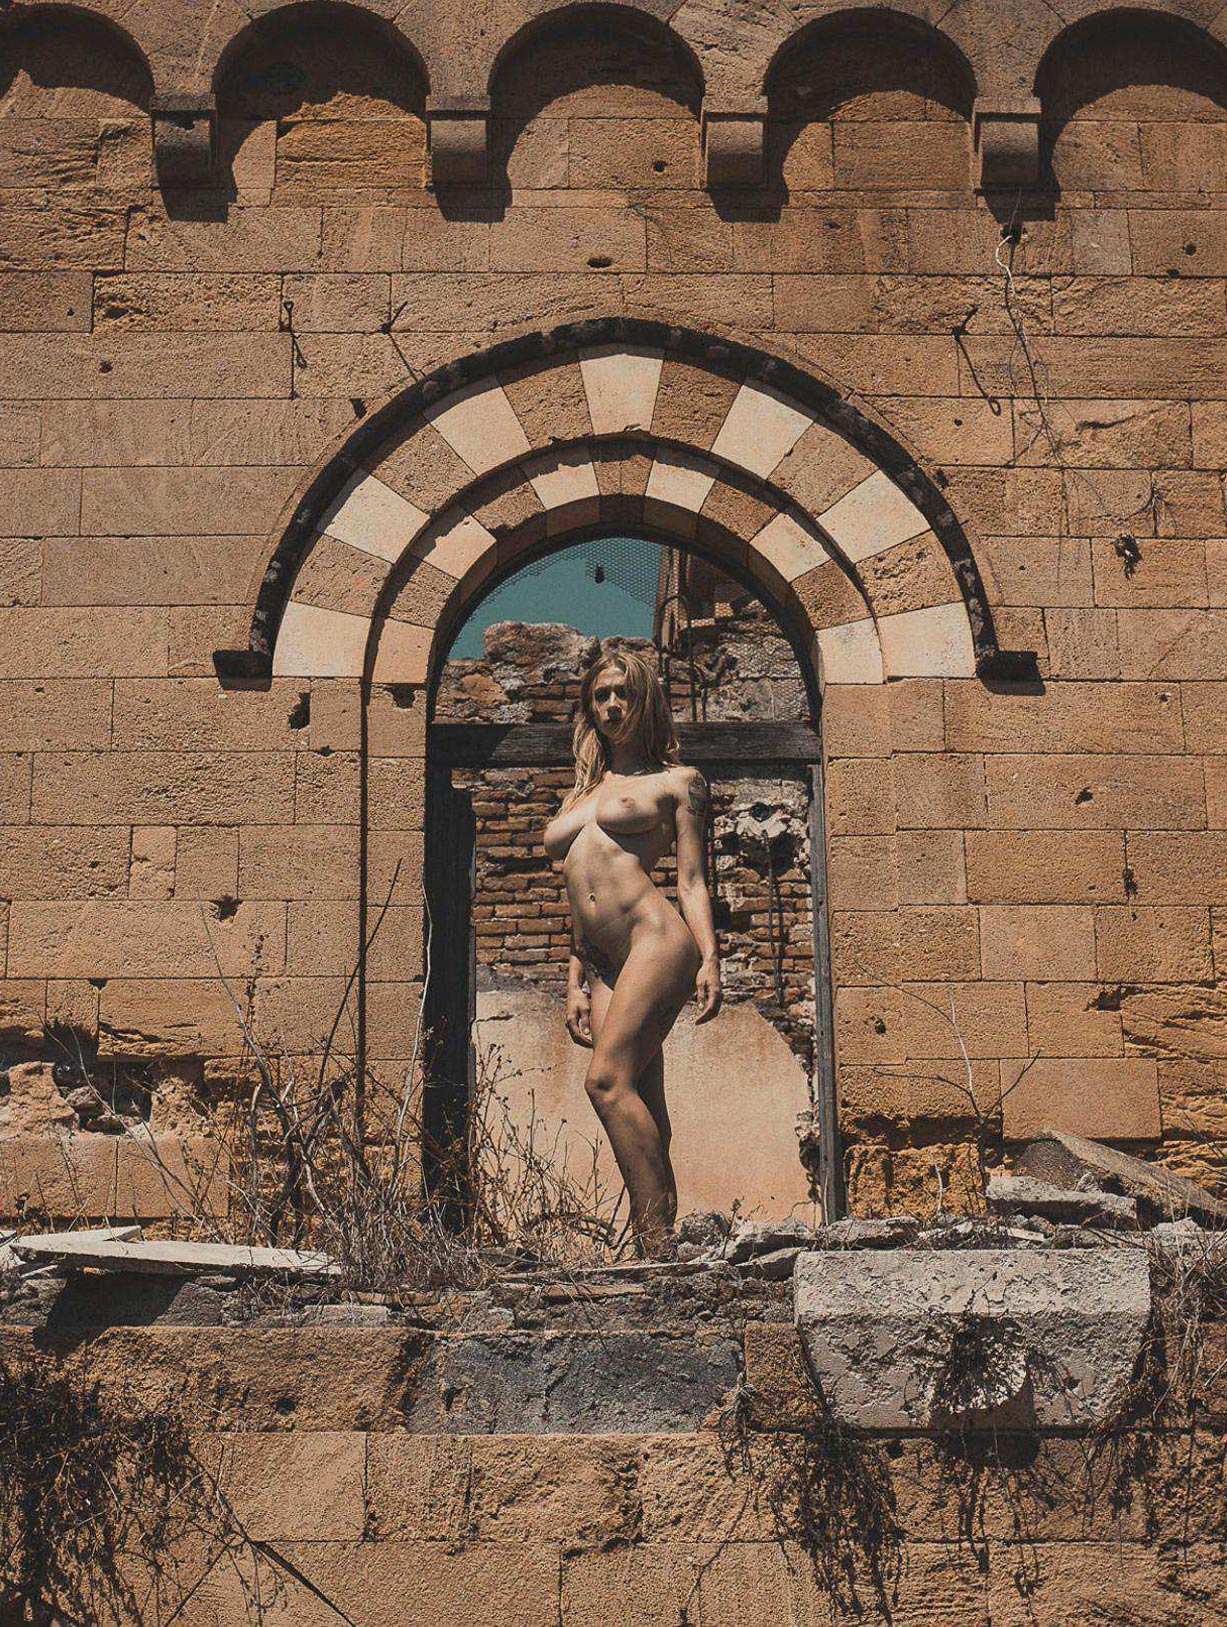 Earthquake / Natasha Legeyda nude by Fabio Paterno / Volo april 2018